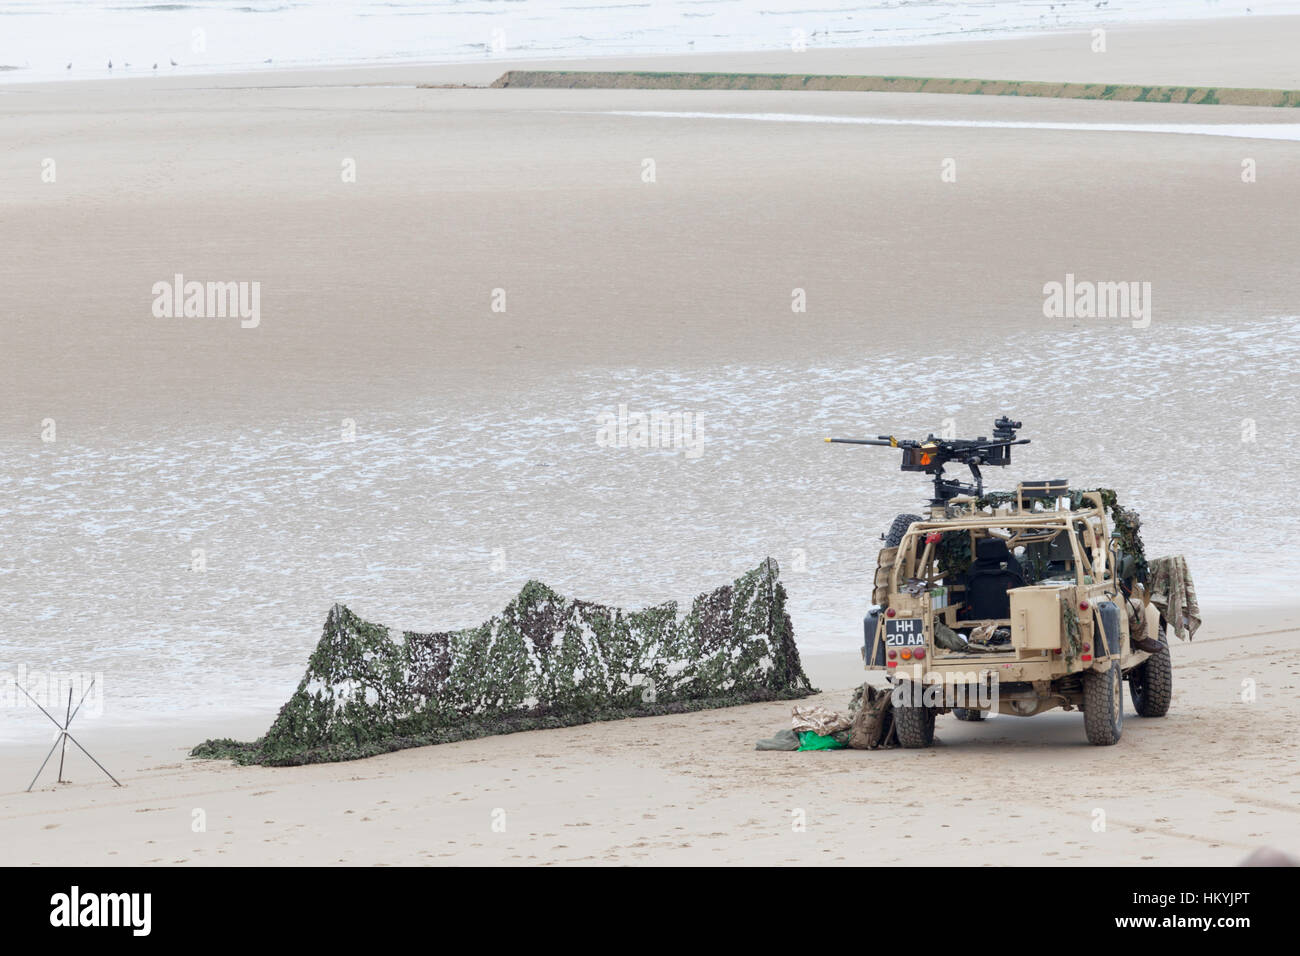 British Army Land Rover parked on a beach with a machine gun mounted on it & camouflage netting nearby during - Stock Image